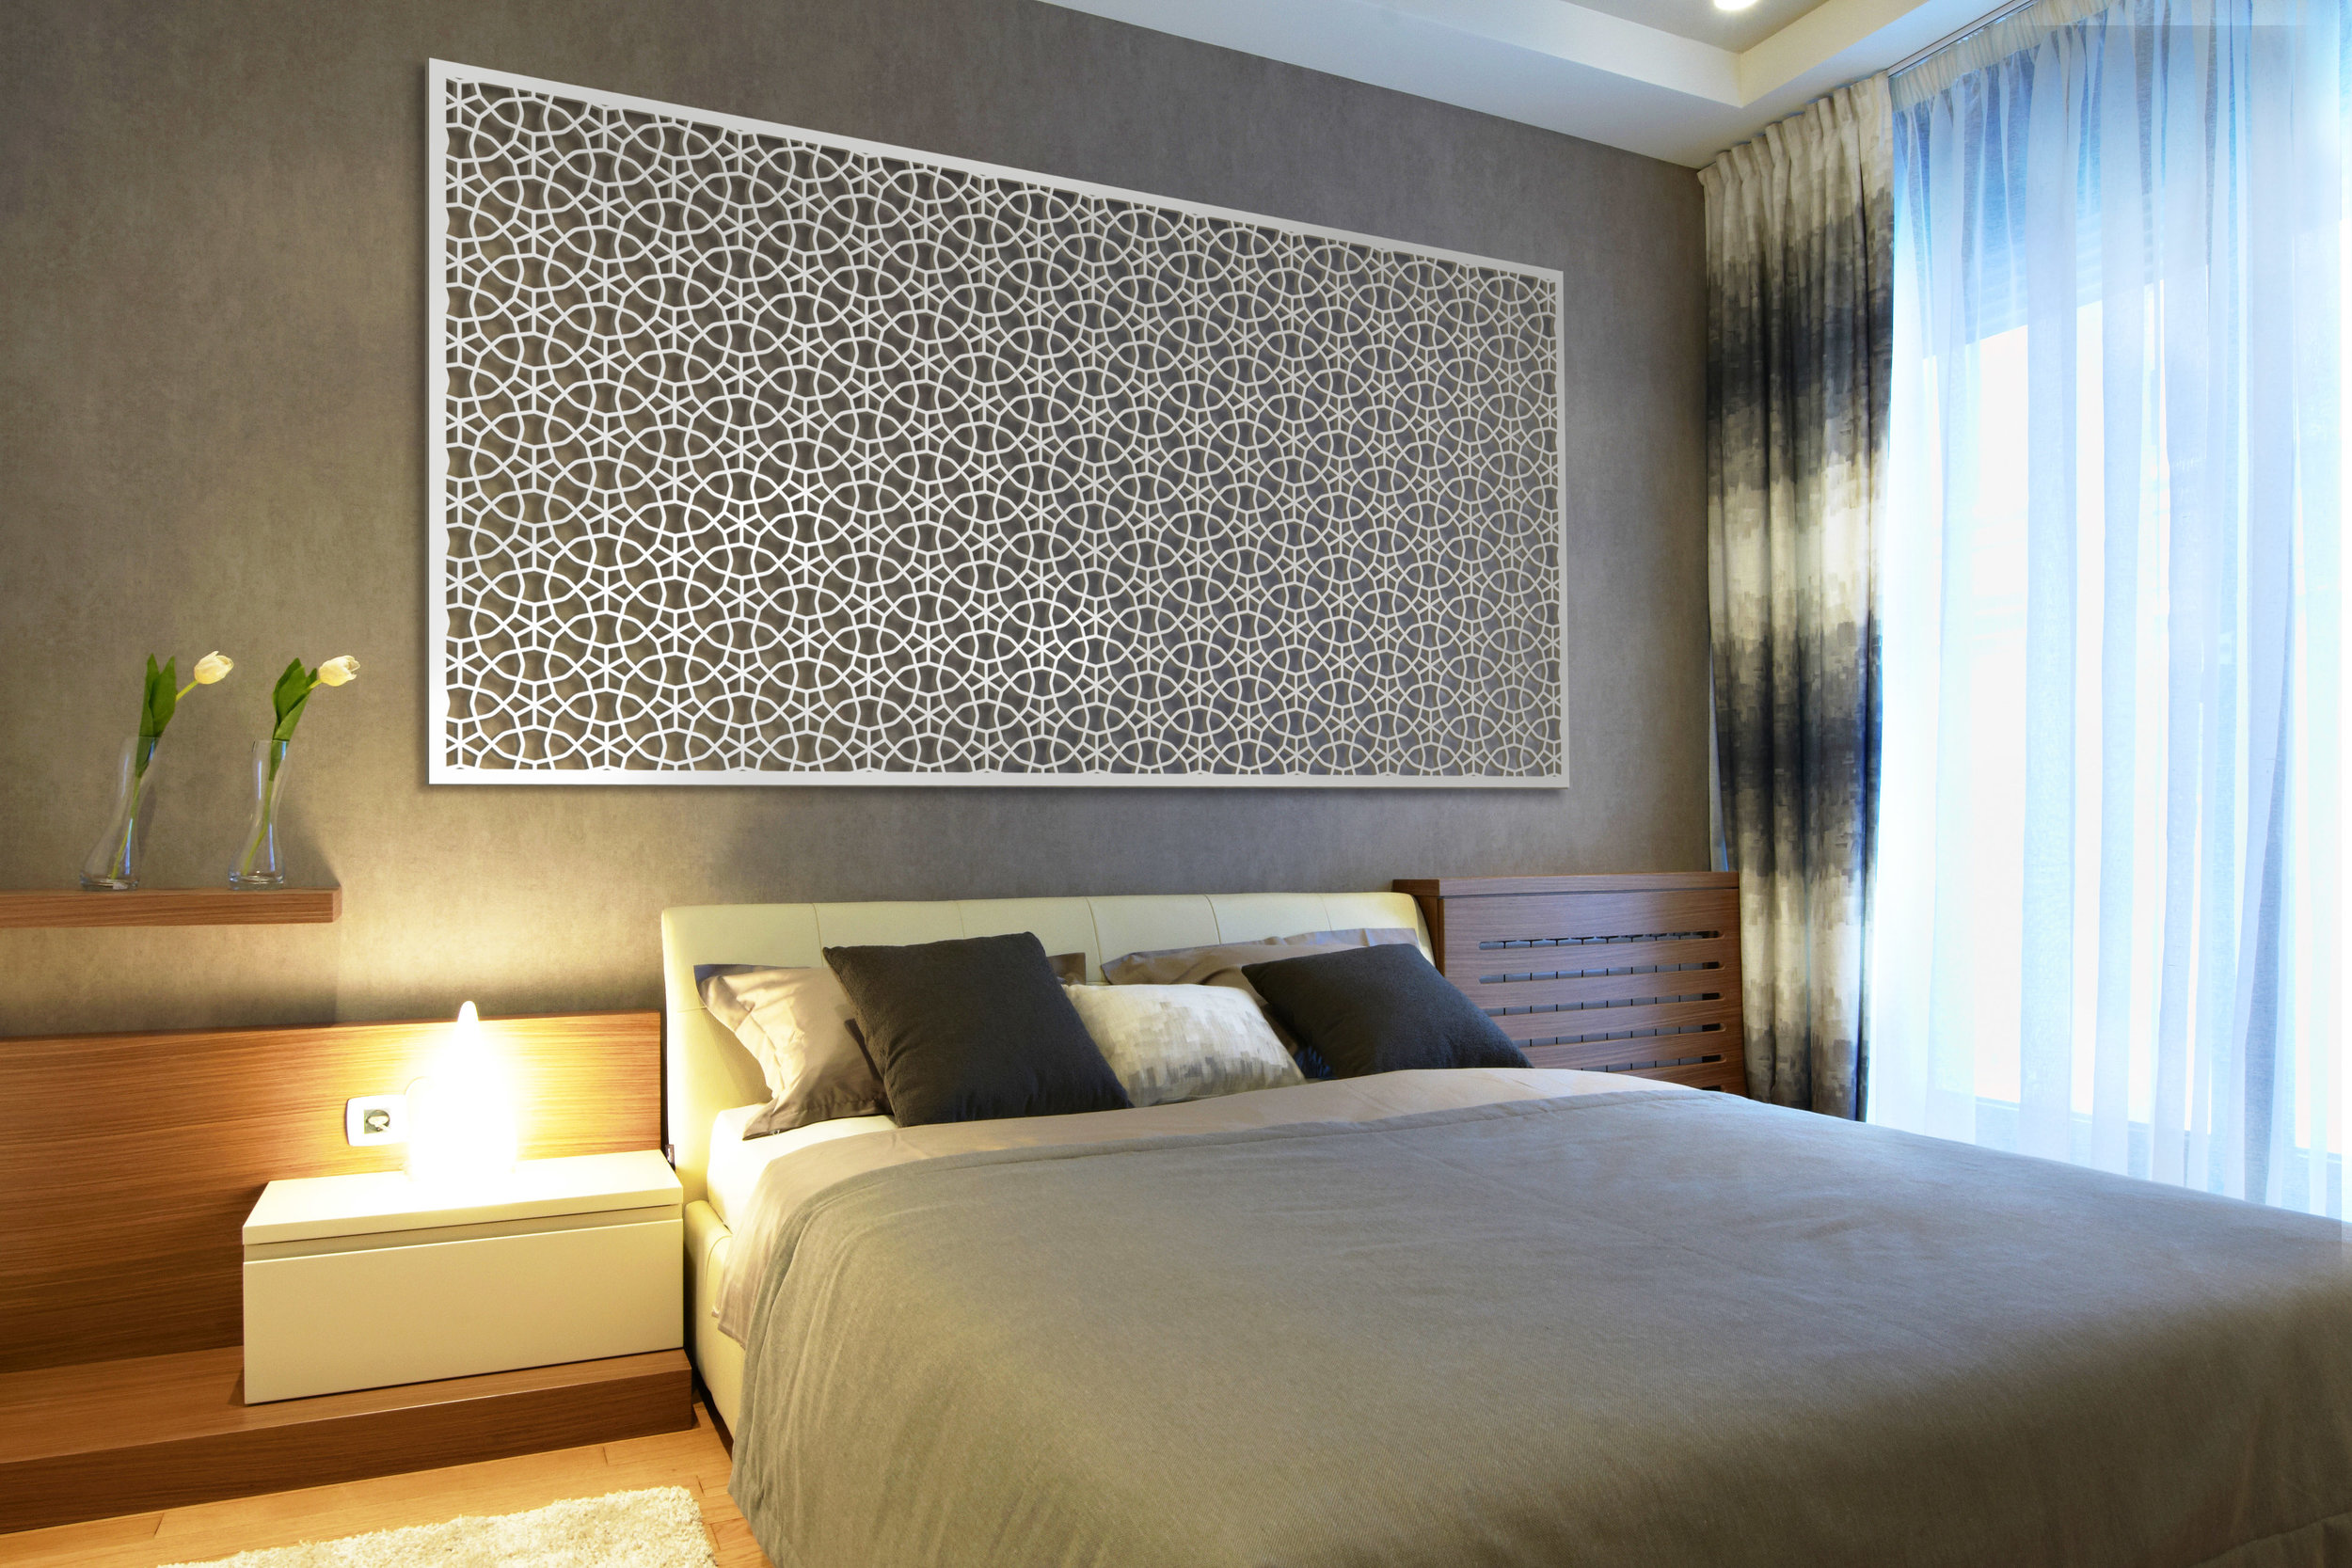 Installation Rendering C   Persian Wheels decorative hotel wall panel - painted